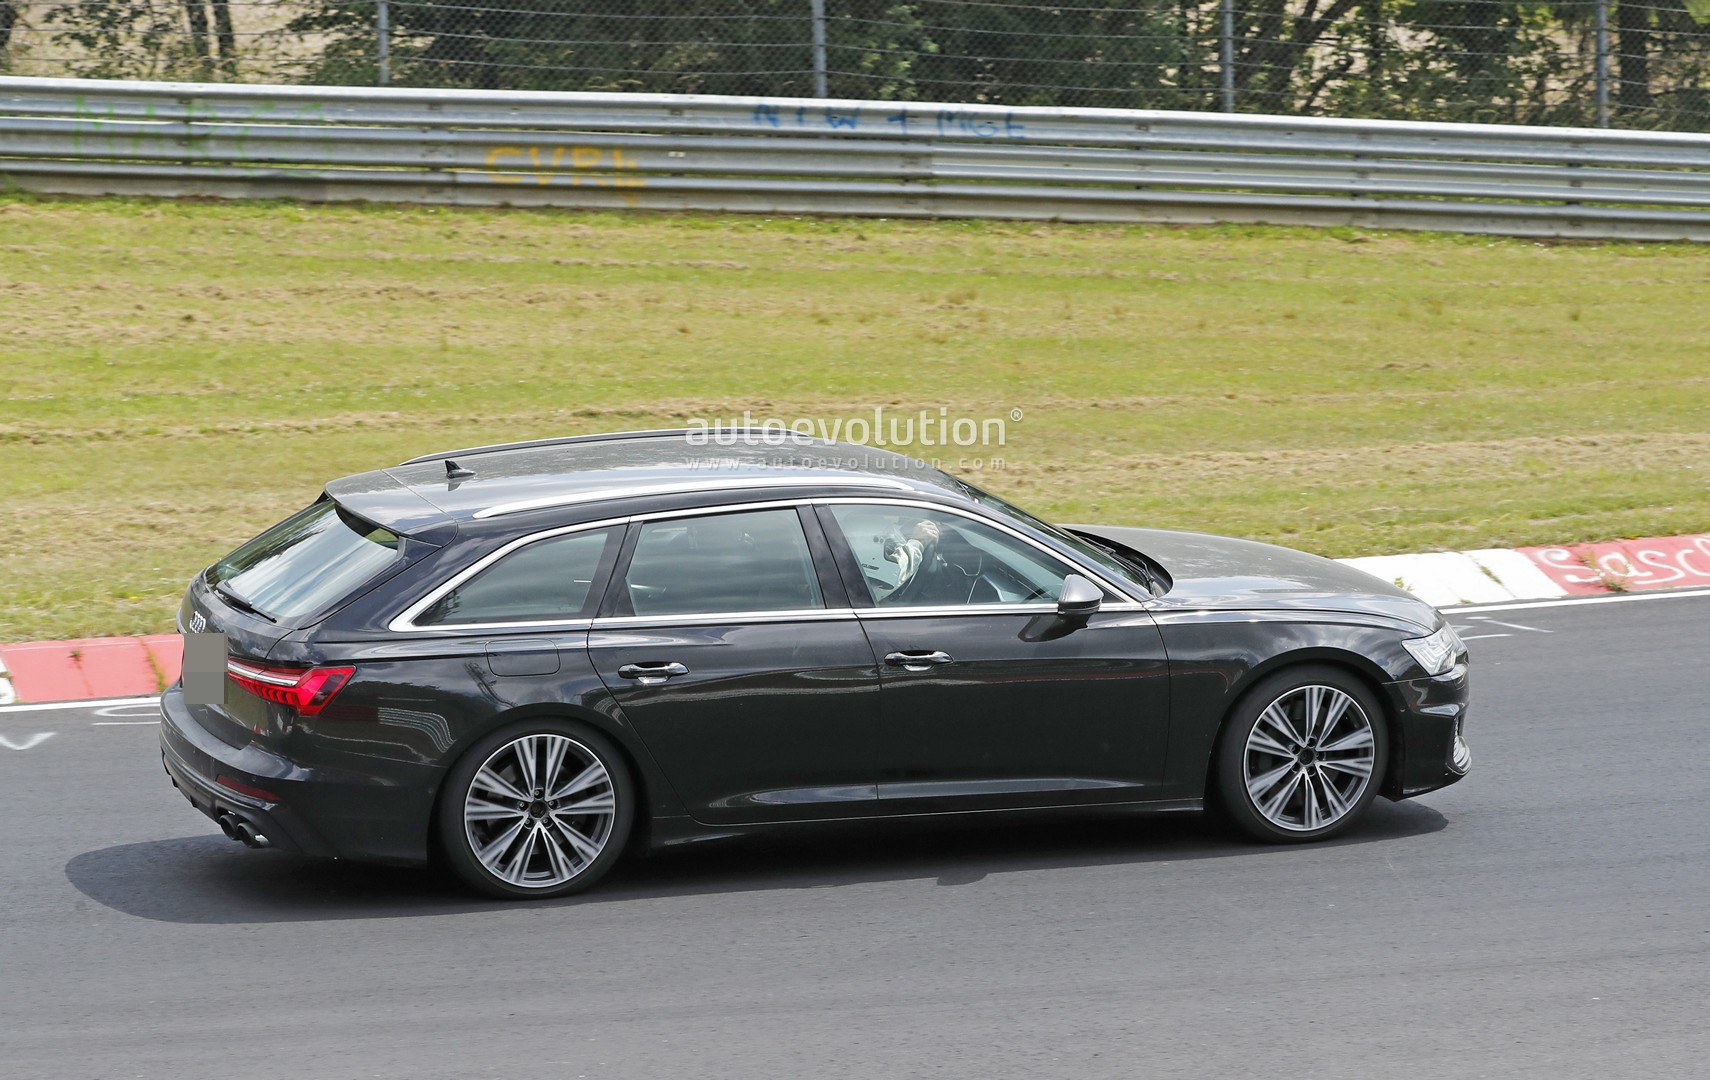 2020 Audi S6 Avant Leans Hard into Corners at the Nurburgring - autoevolution